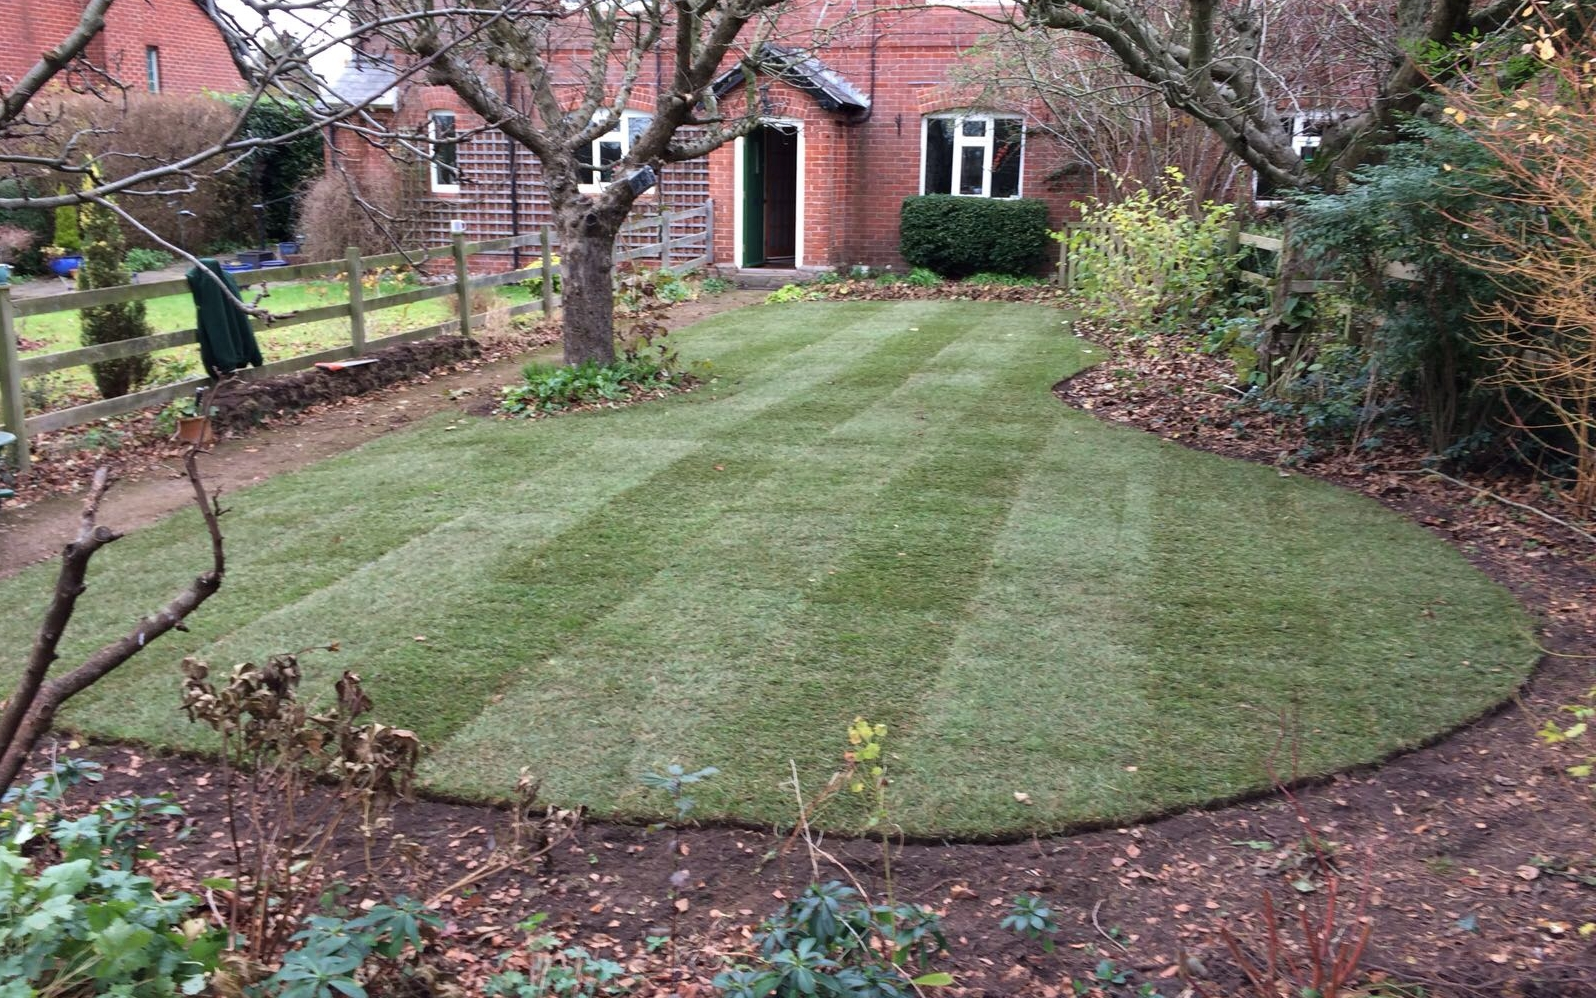 RTF turf installed with custom stripes in King's Somborne, Hampshire